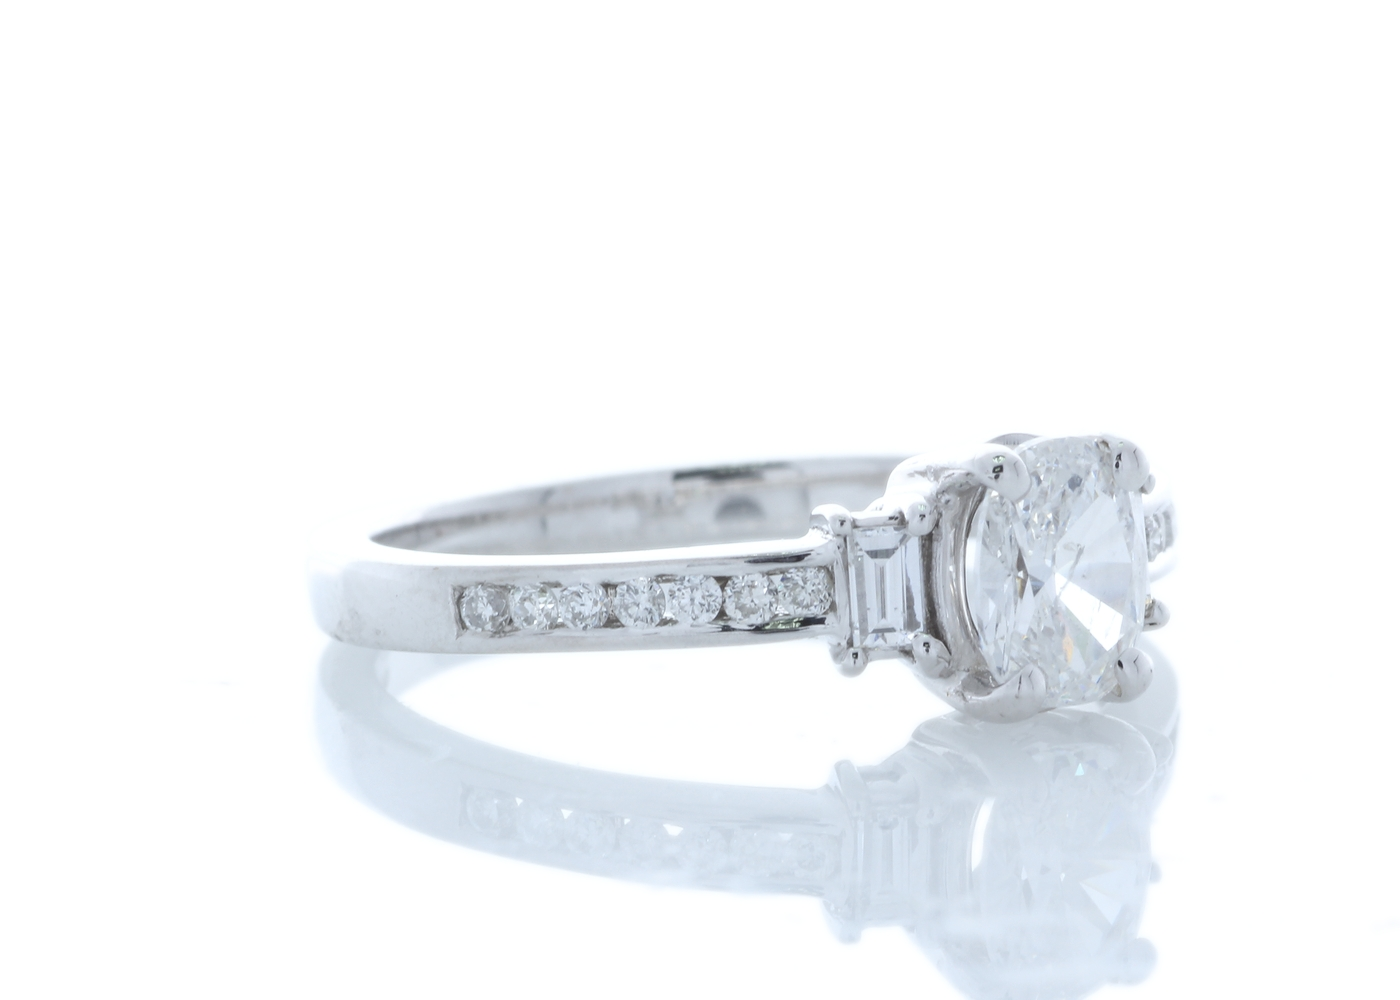 18ct White Gold Stone Set Shoulders Diamond Ring 0.74 Carats - Image 4 of 5